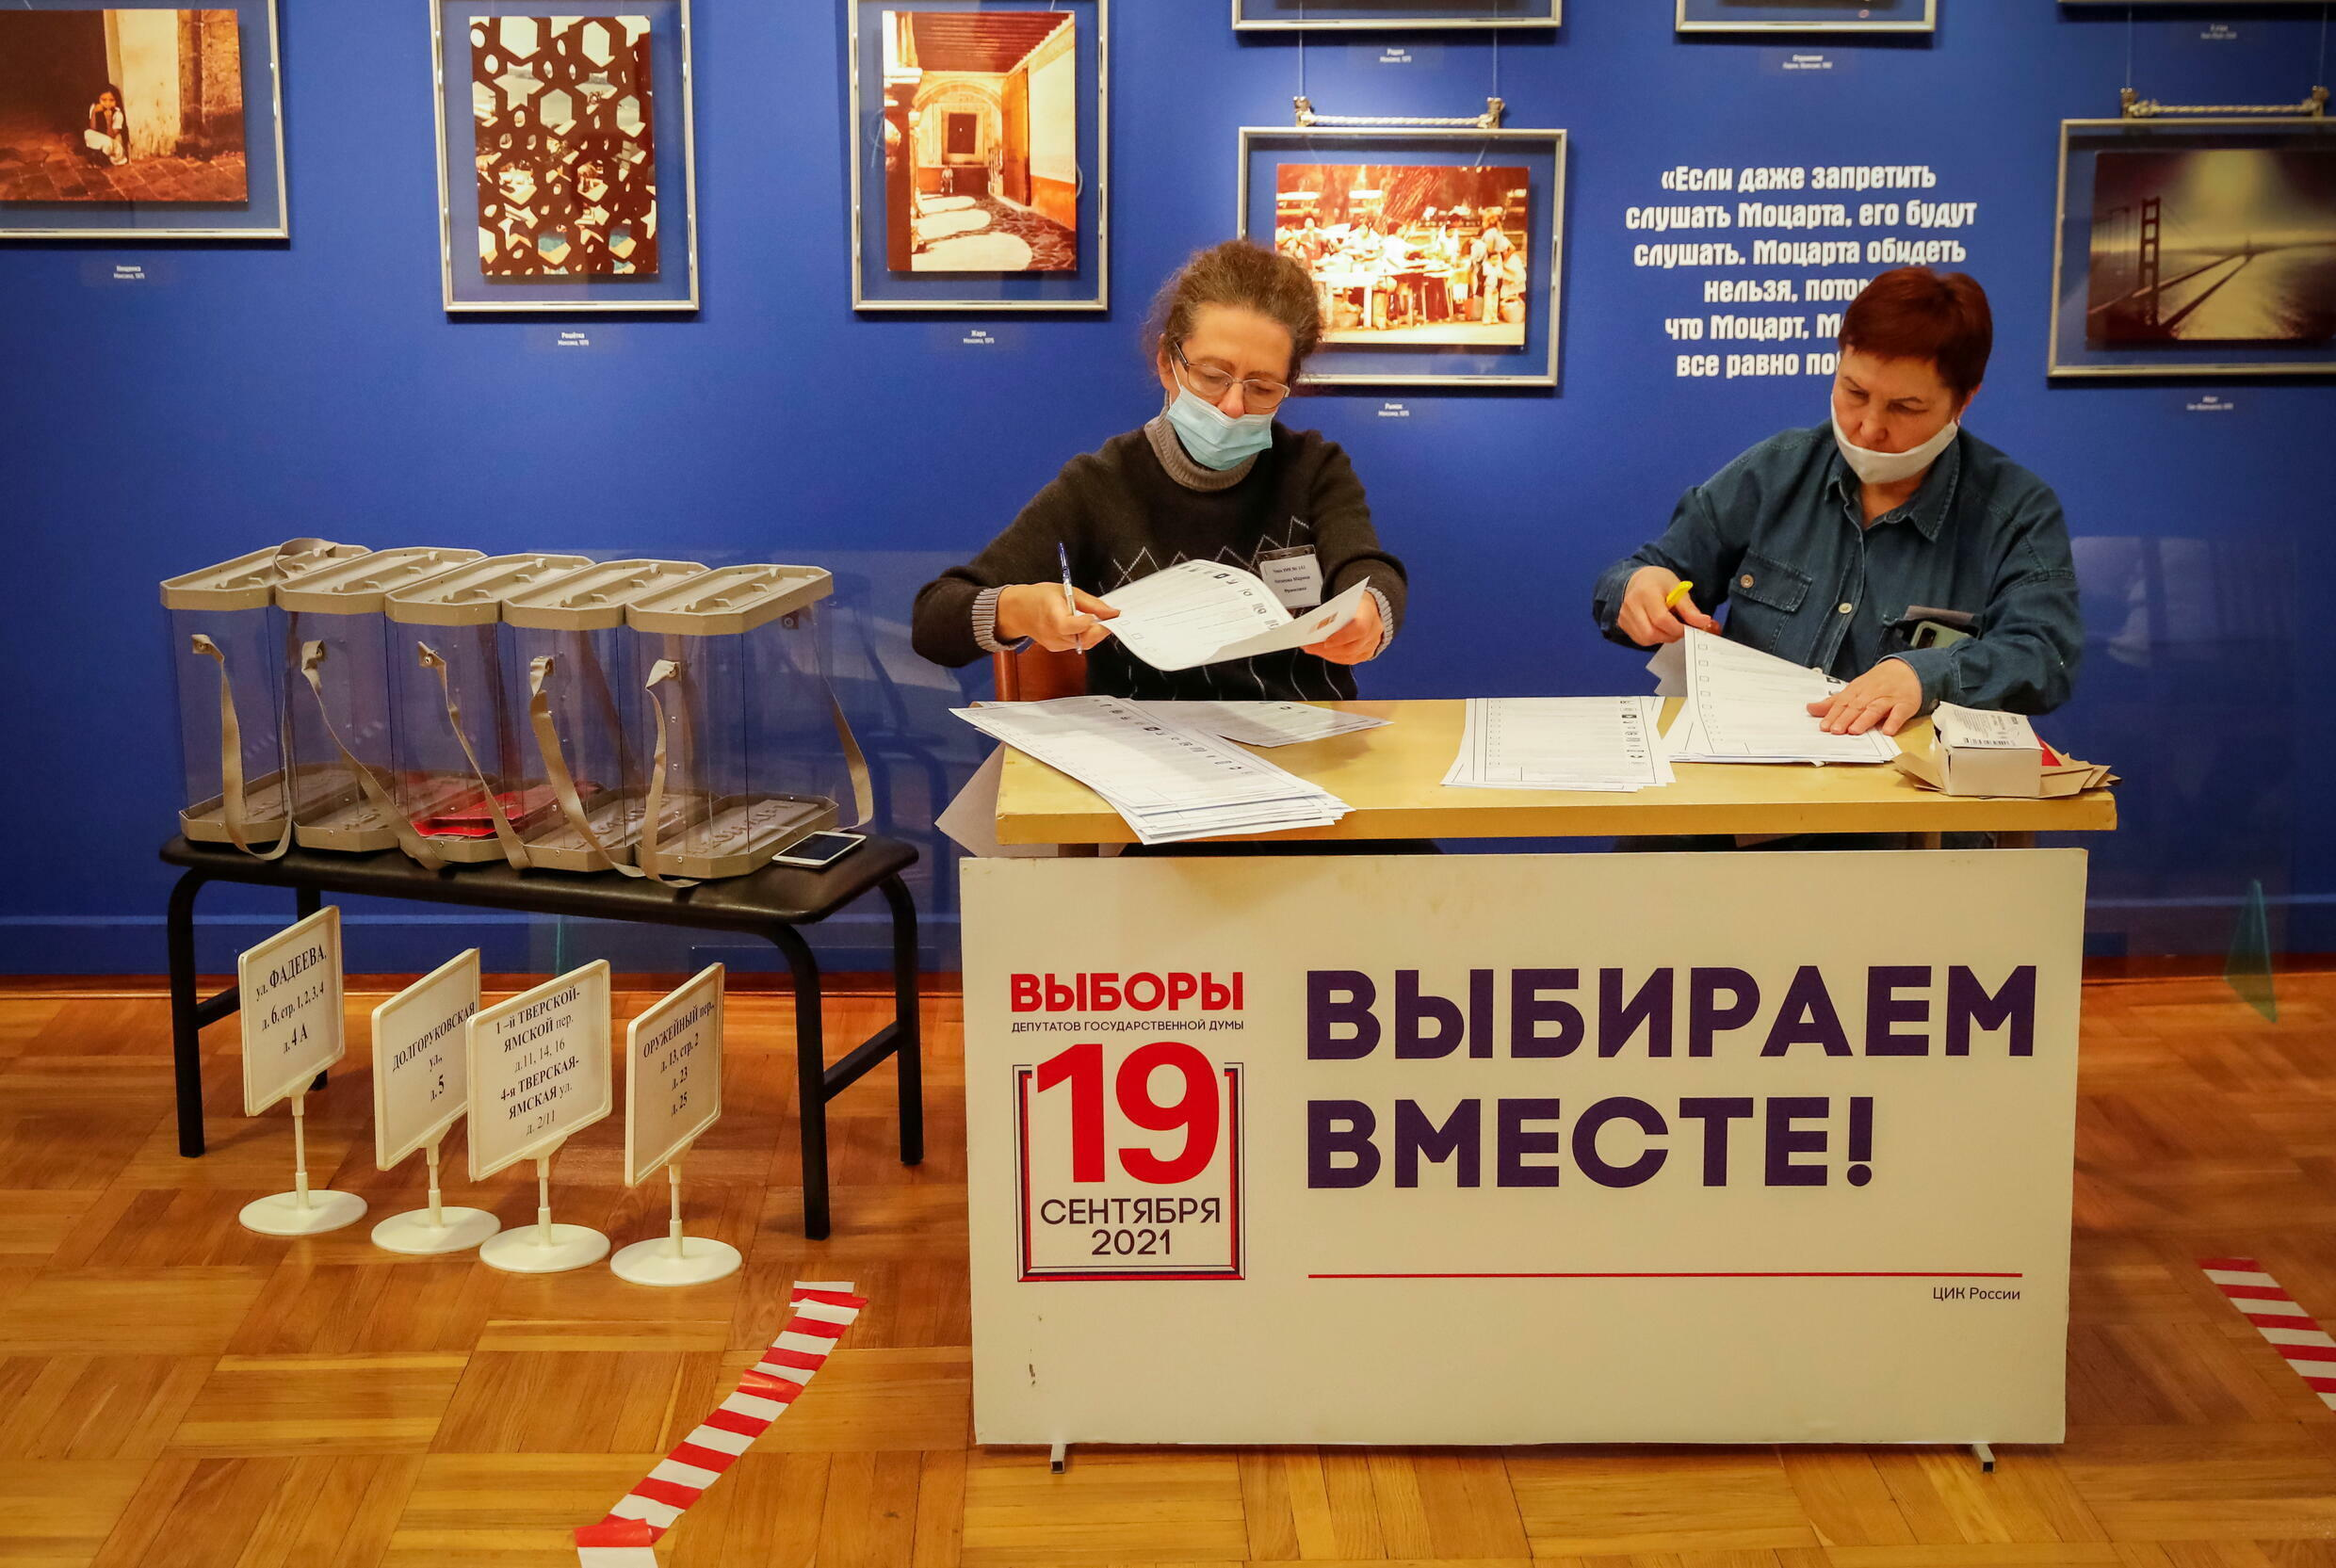 2021-09-16T113753Z_614111749_RC2ZQP9BX75X_RTRMADP_3_RUSSIA-ELECTION-PREPARATIONS